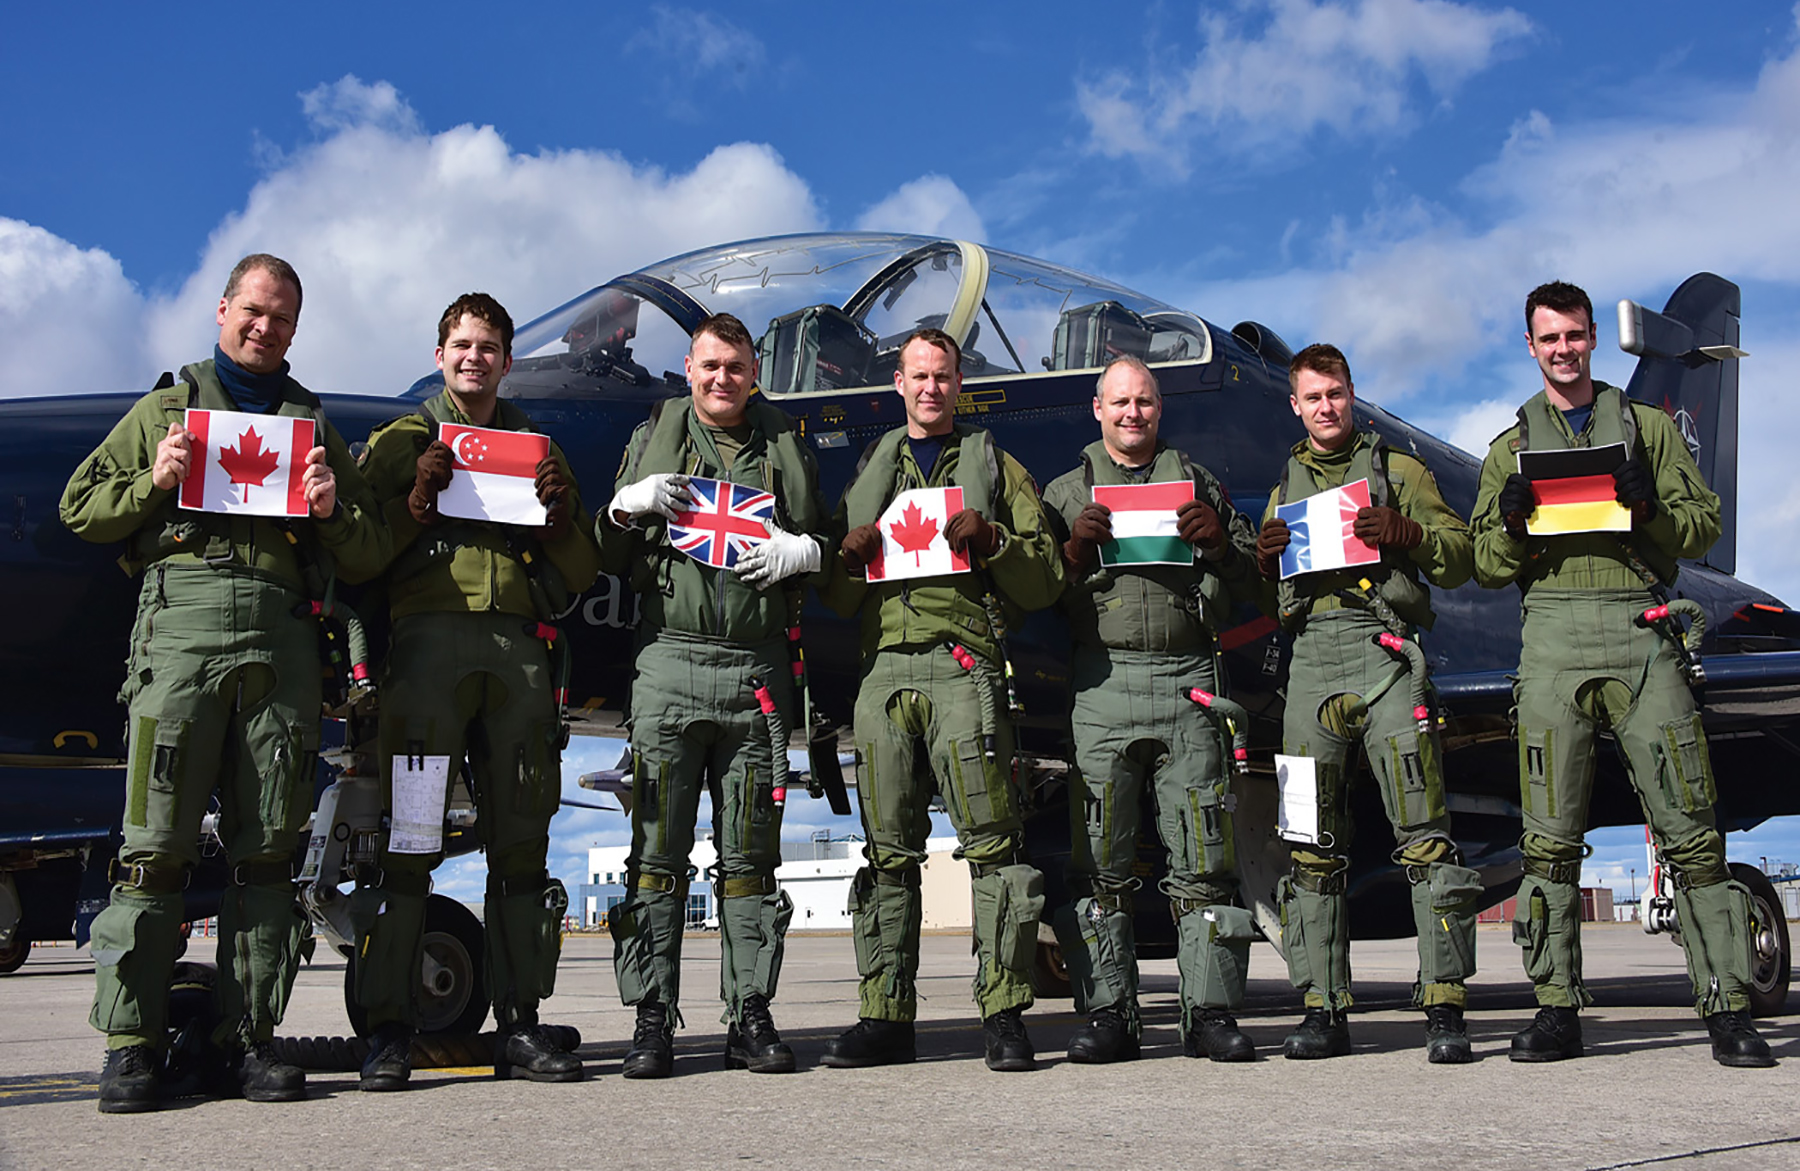 Under the NATO Flying Training in Canada (NFTC) program, 419 Squadron has, since 2000, provided training to a multinational student population via an equally diverse group of instructors. PHOTO: Mike Reyno, Skies magazine